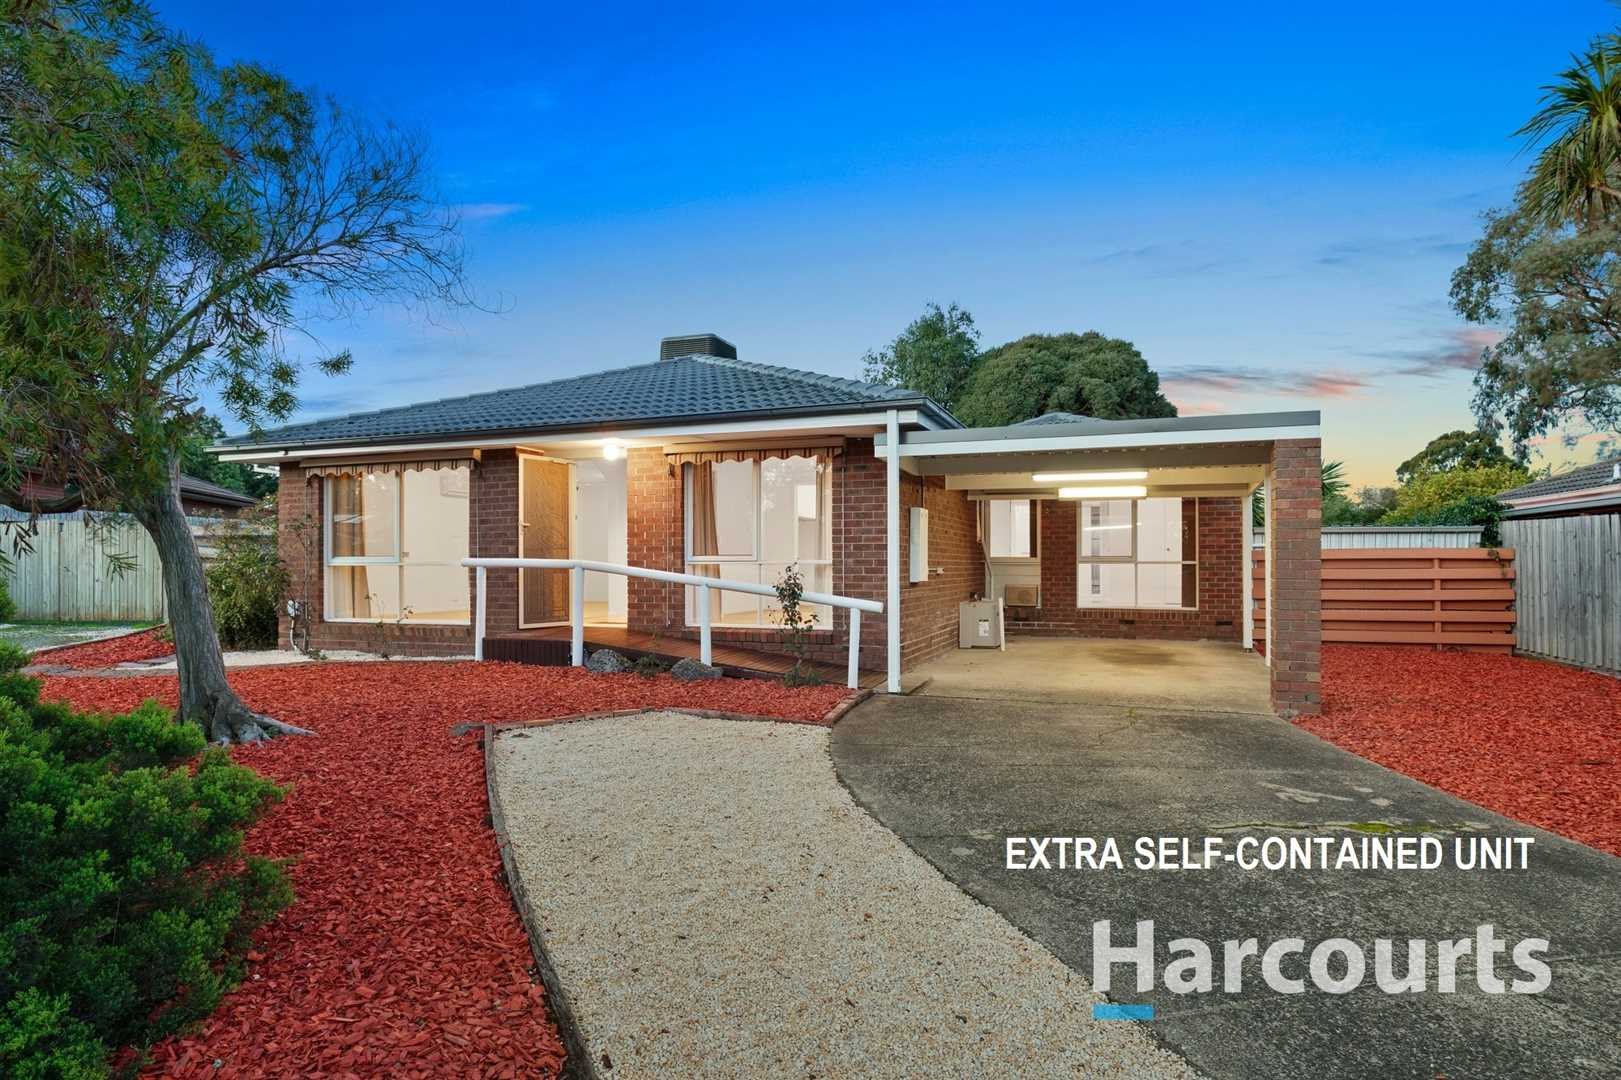 4 Bedroom Home on 750m2 approx. with Self-Contained Unit